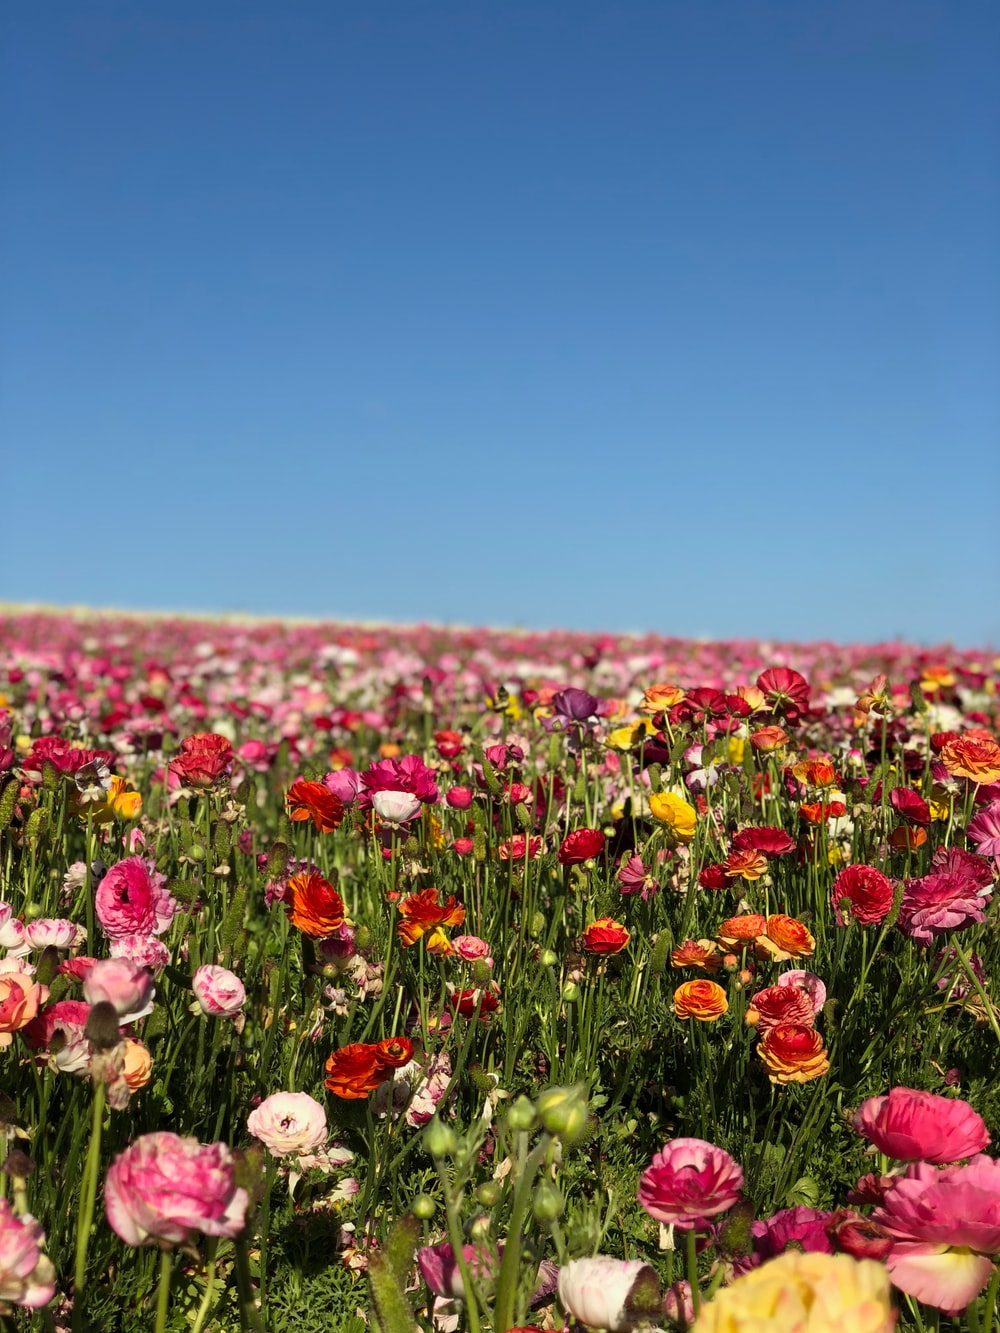 500 flower field pictures hd download free images on unsplash assorted color flower farm during daytime mightylinksfo